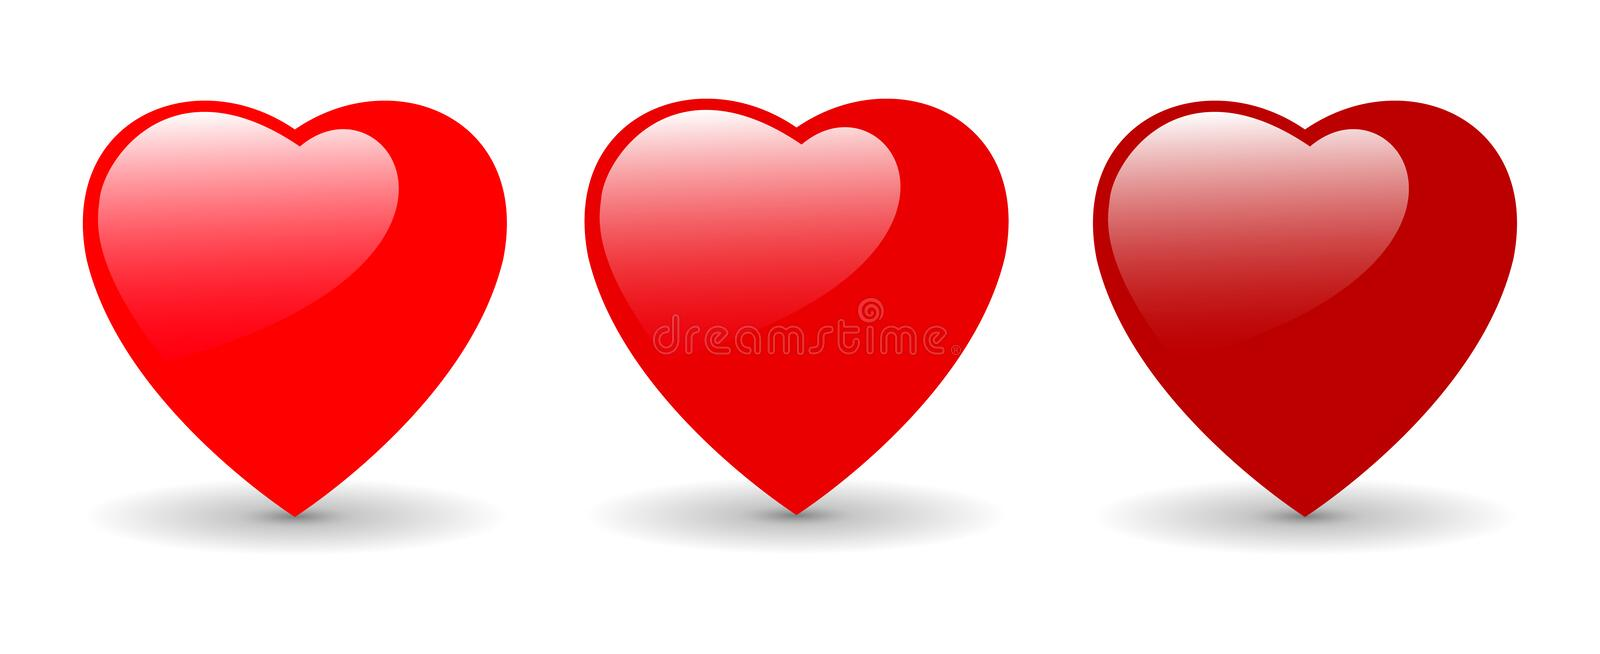 Hearts Vector illustration stock illustration